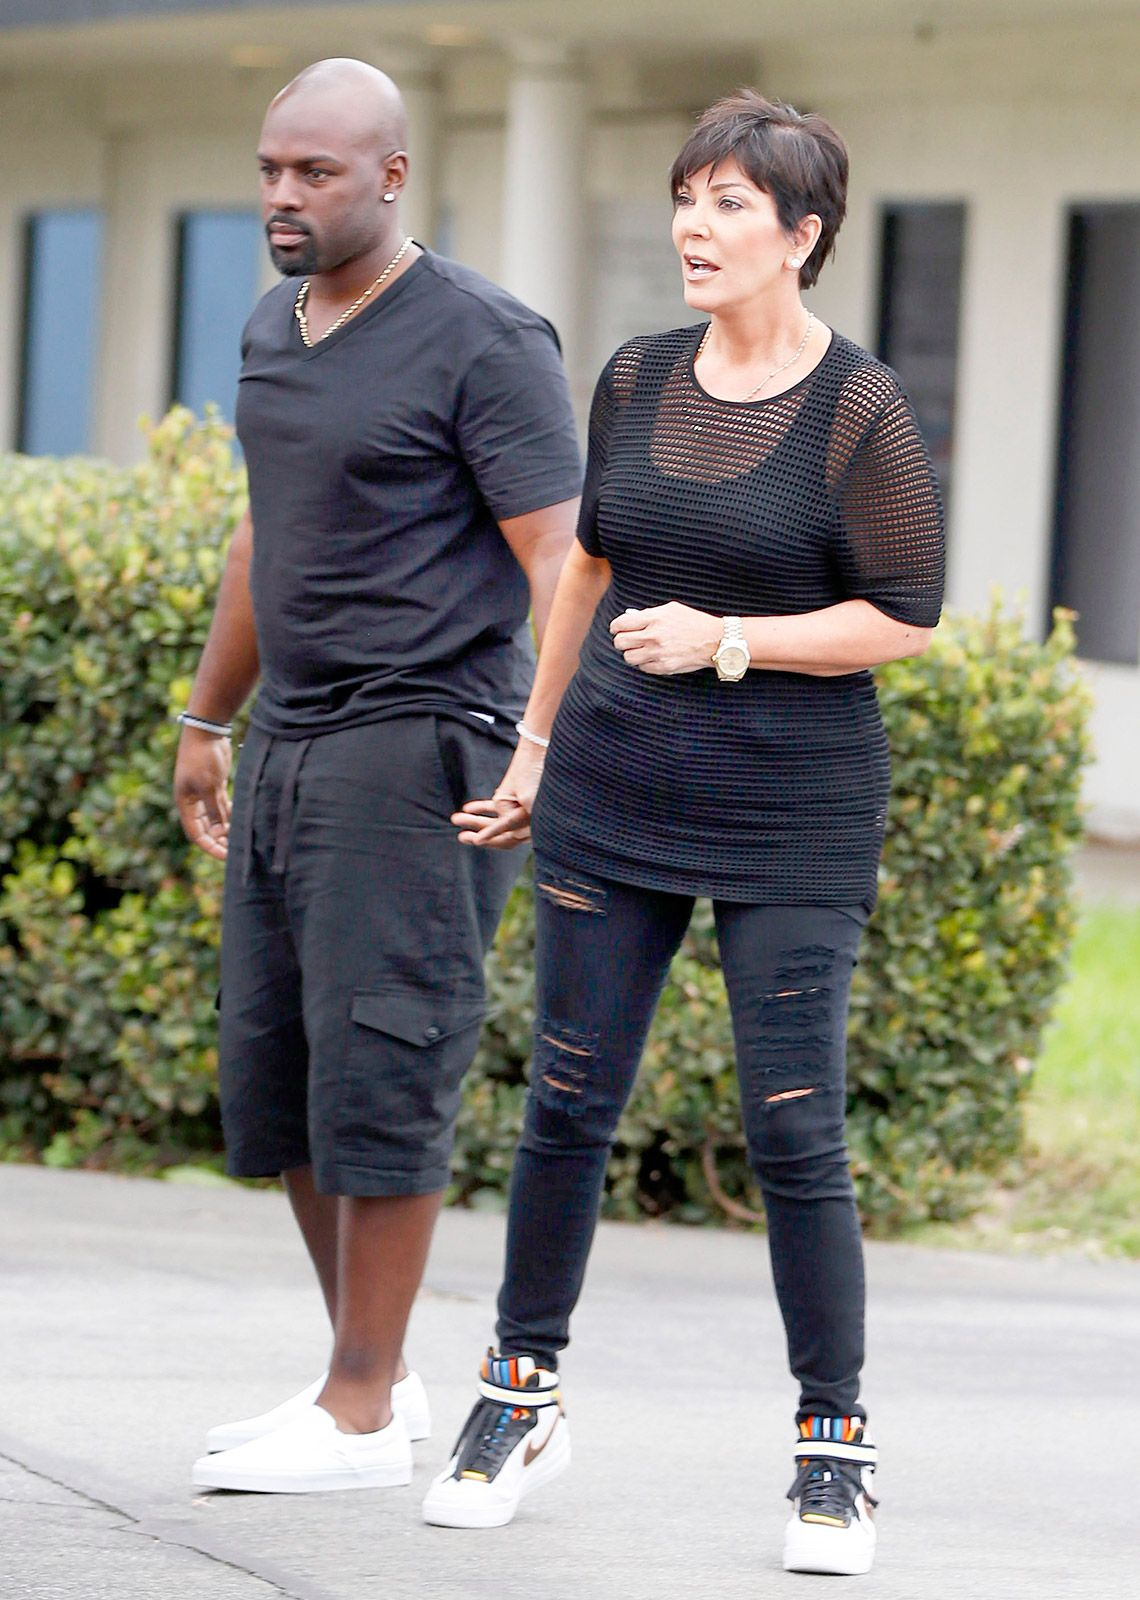 4d5252260aecc3 Kris Jenner is going public with her new boyfriend Corey Gamble -- see the  hand-holding pictures here!